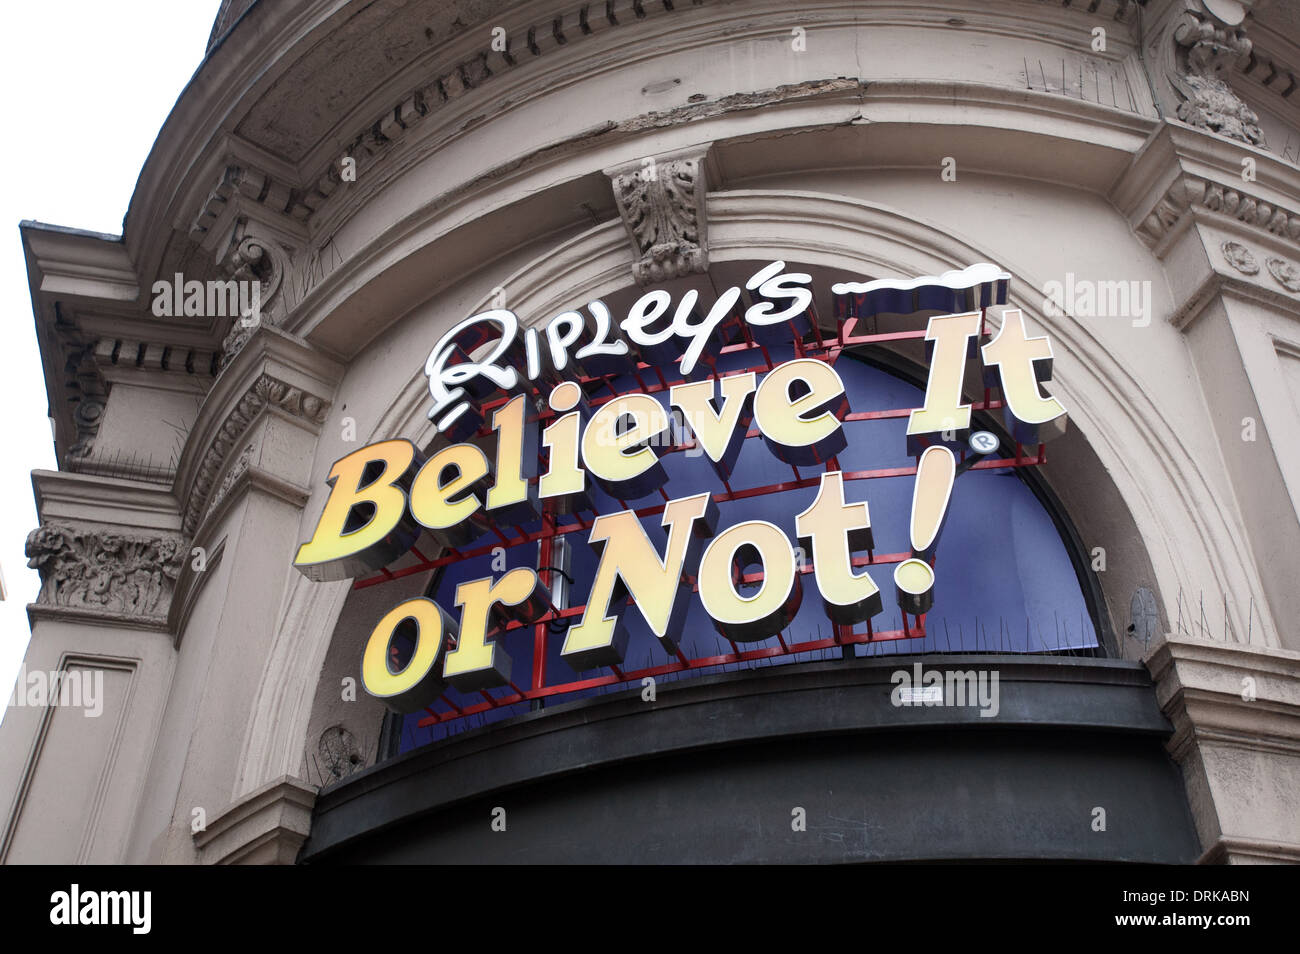 Ripley's Believe it or Not Museum. Piccadilly Circus. - Stock Image